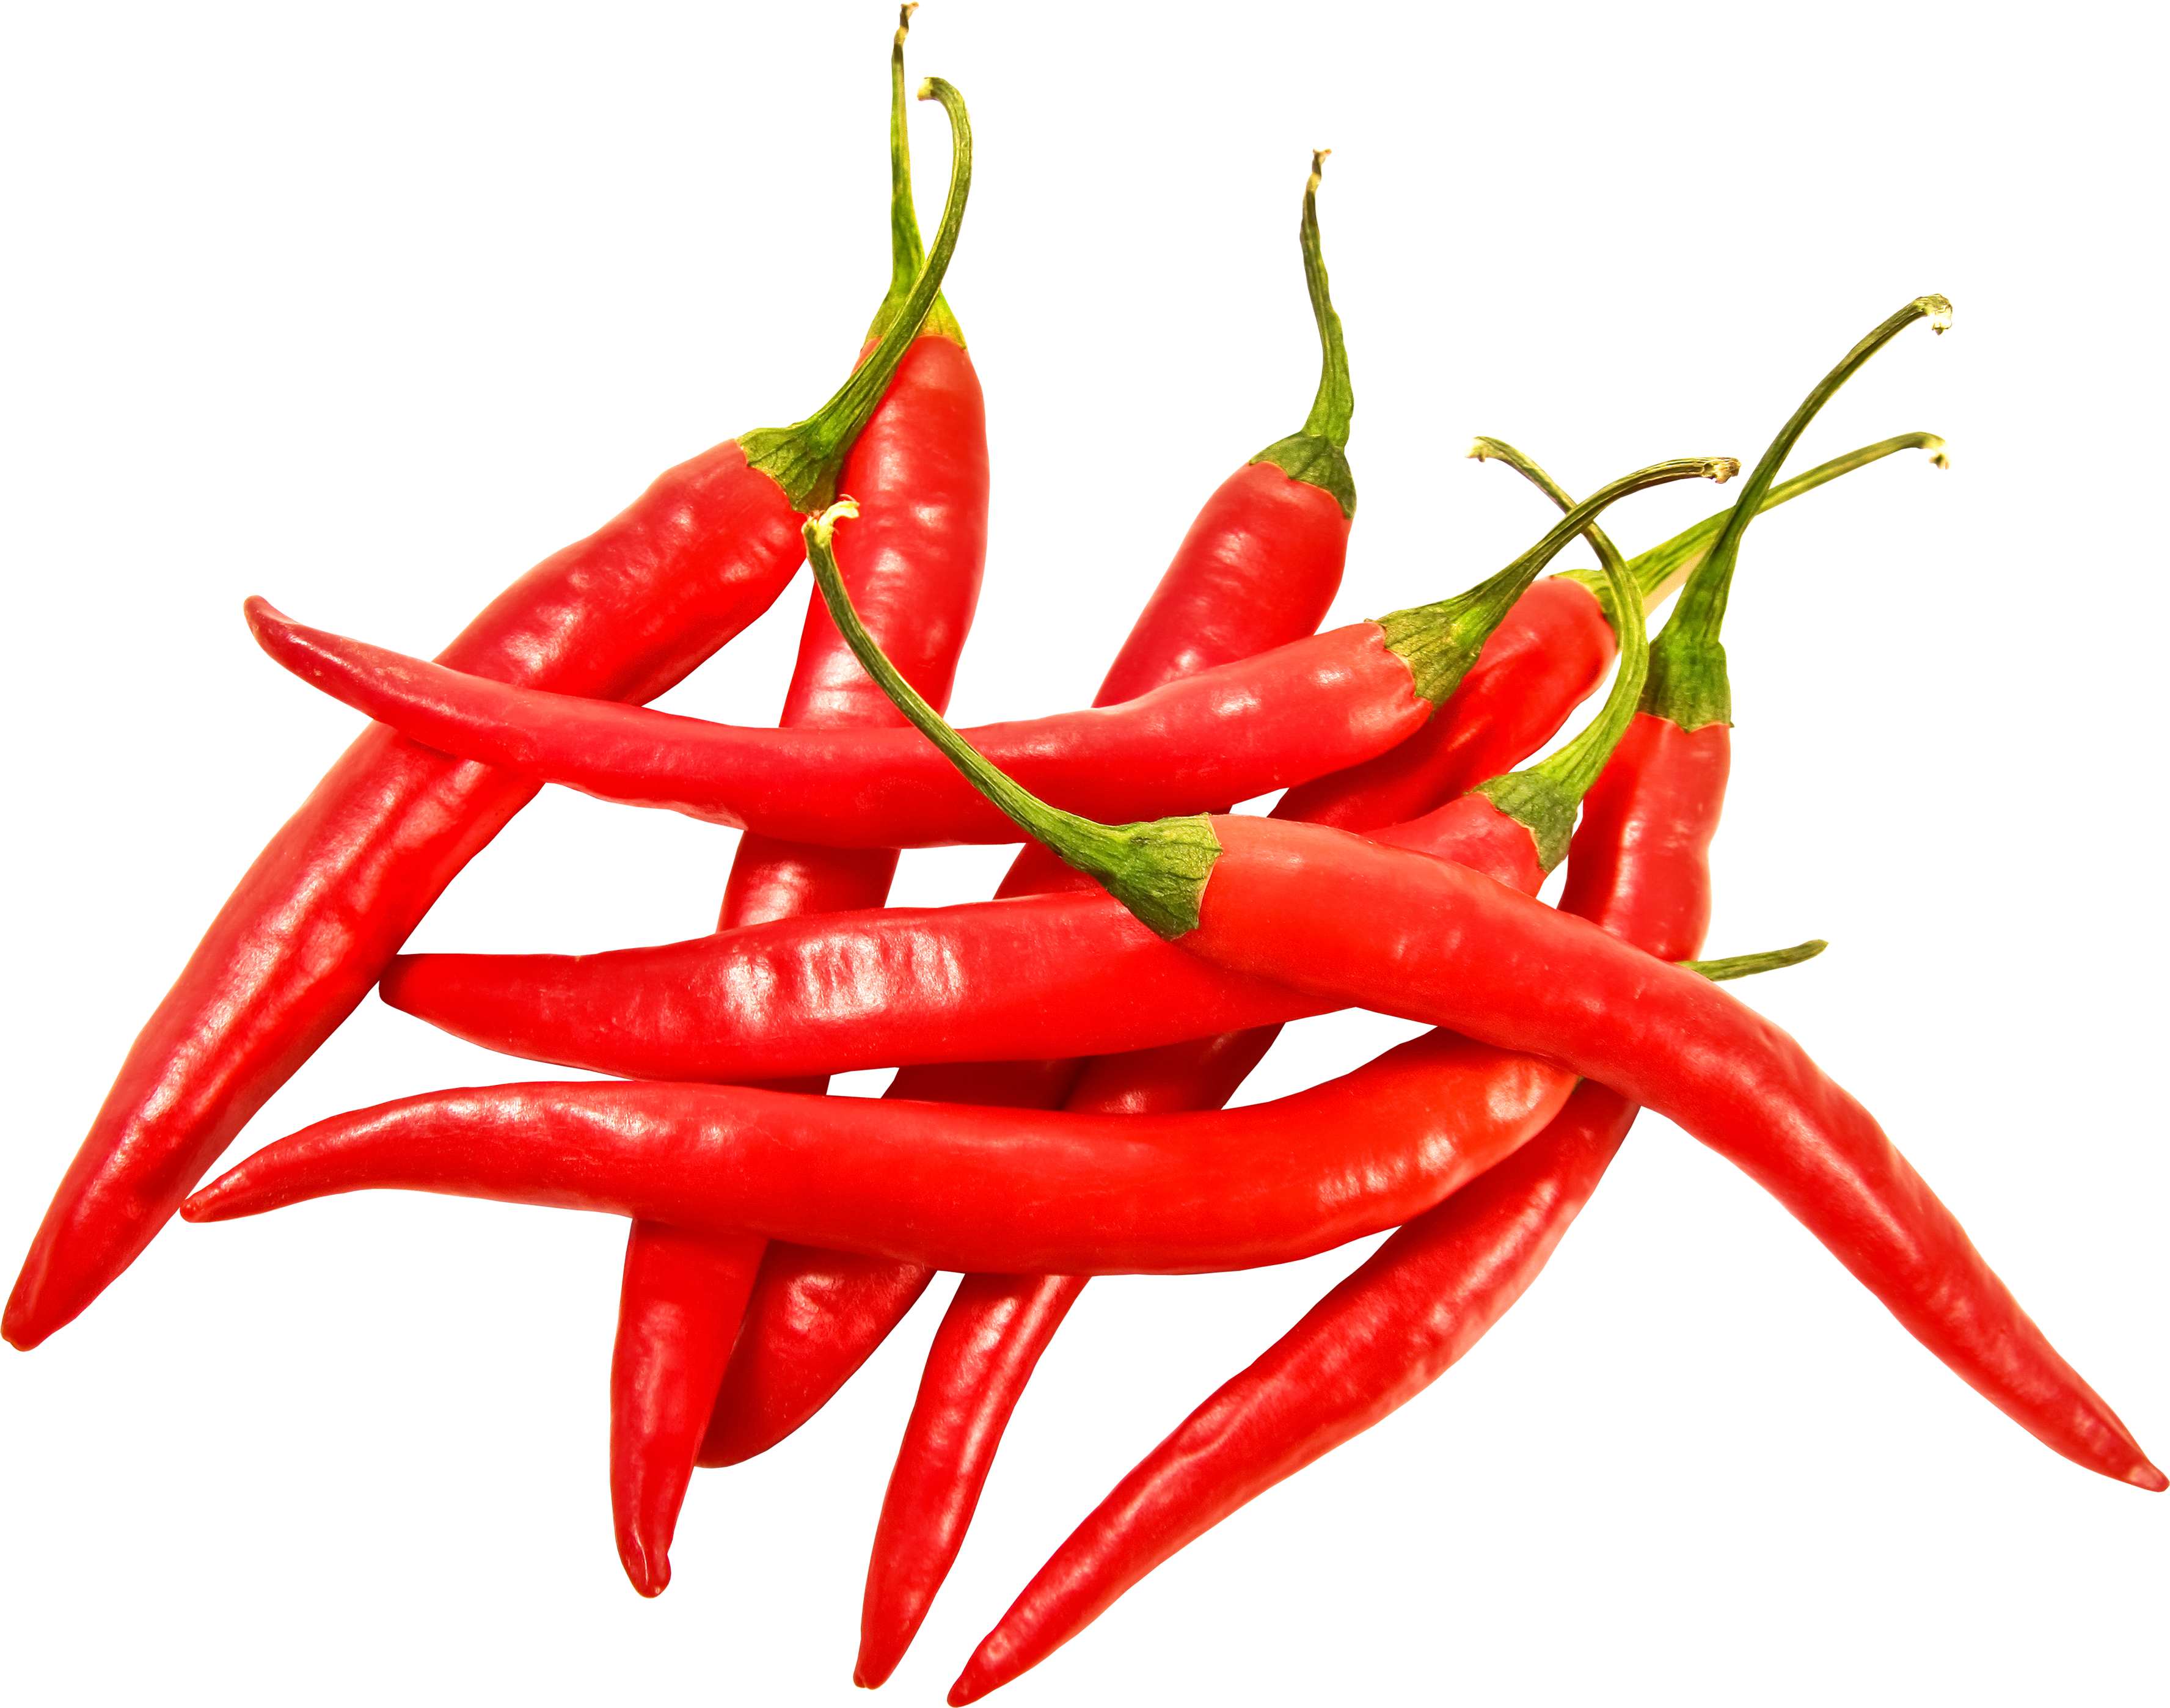 Pepper transparent chili. Red png image purepng